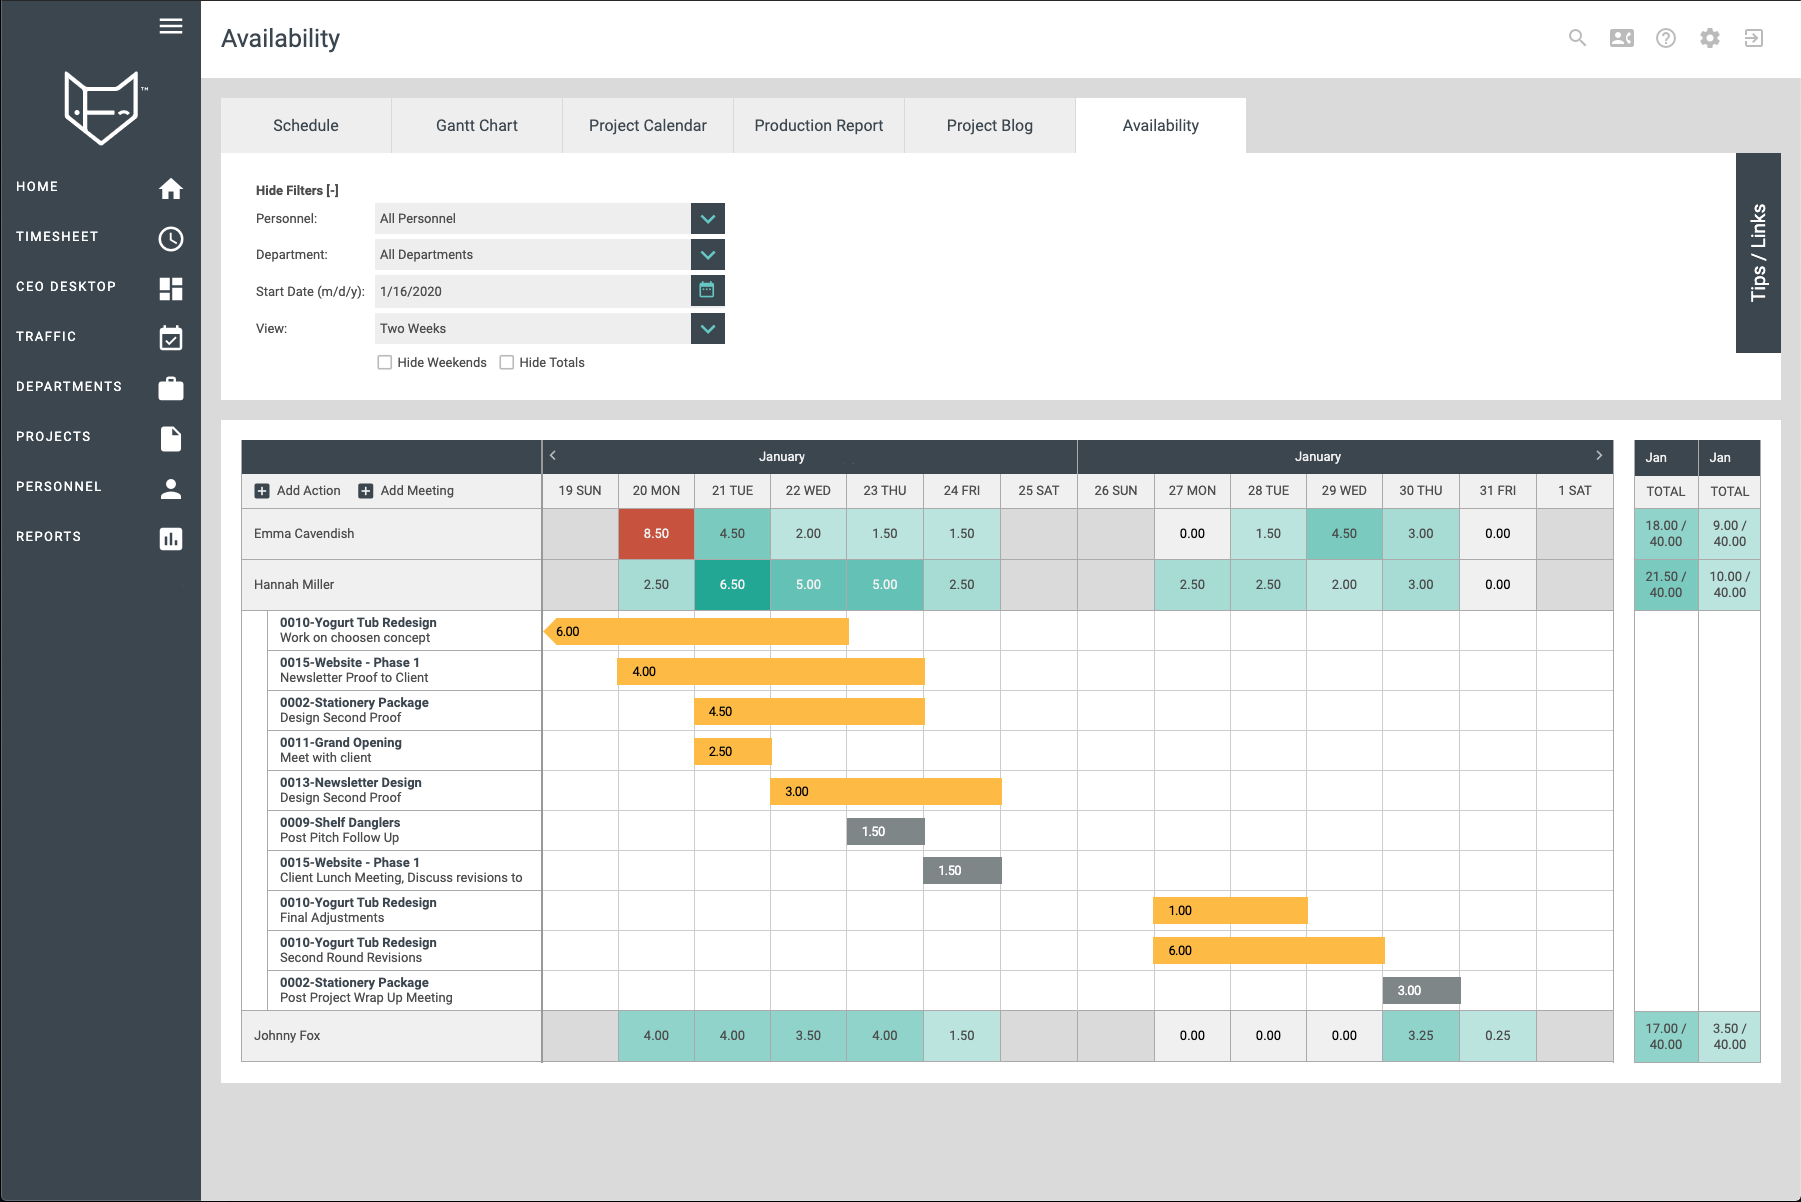 FunctionFox Software - Resource Availability: See how your team resources, adjust work loads or reassign work quickly and efficiently.